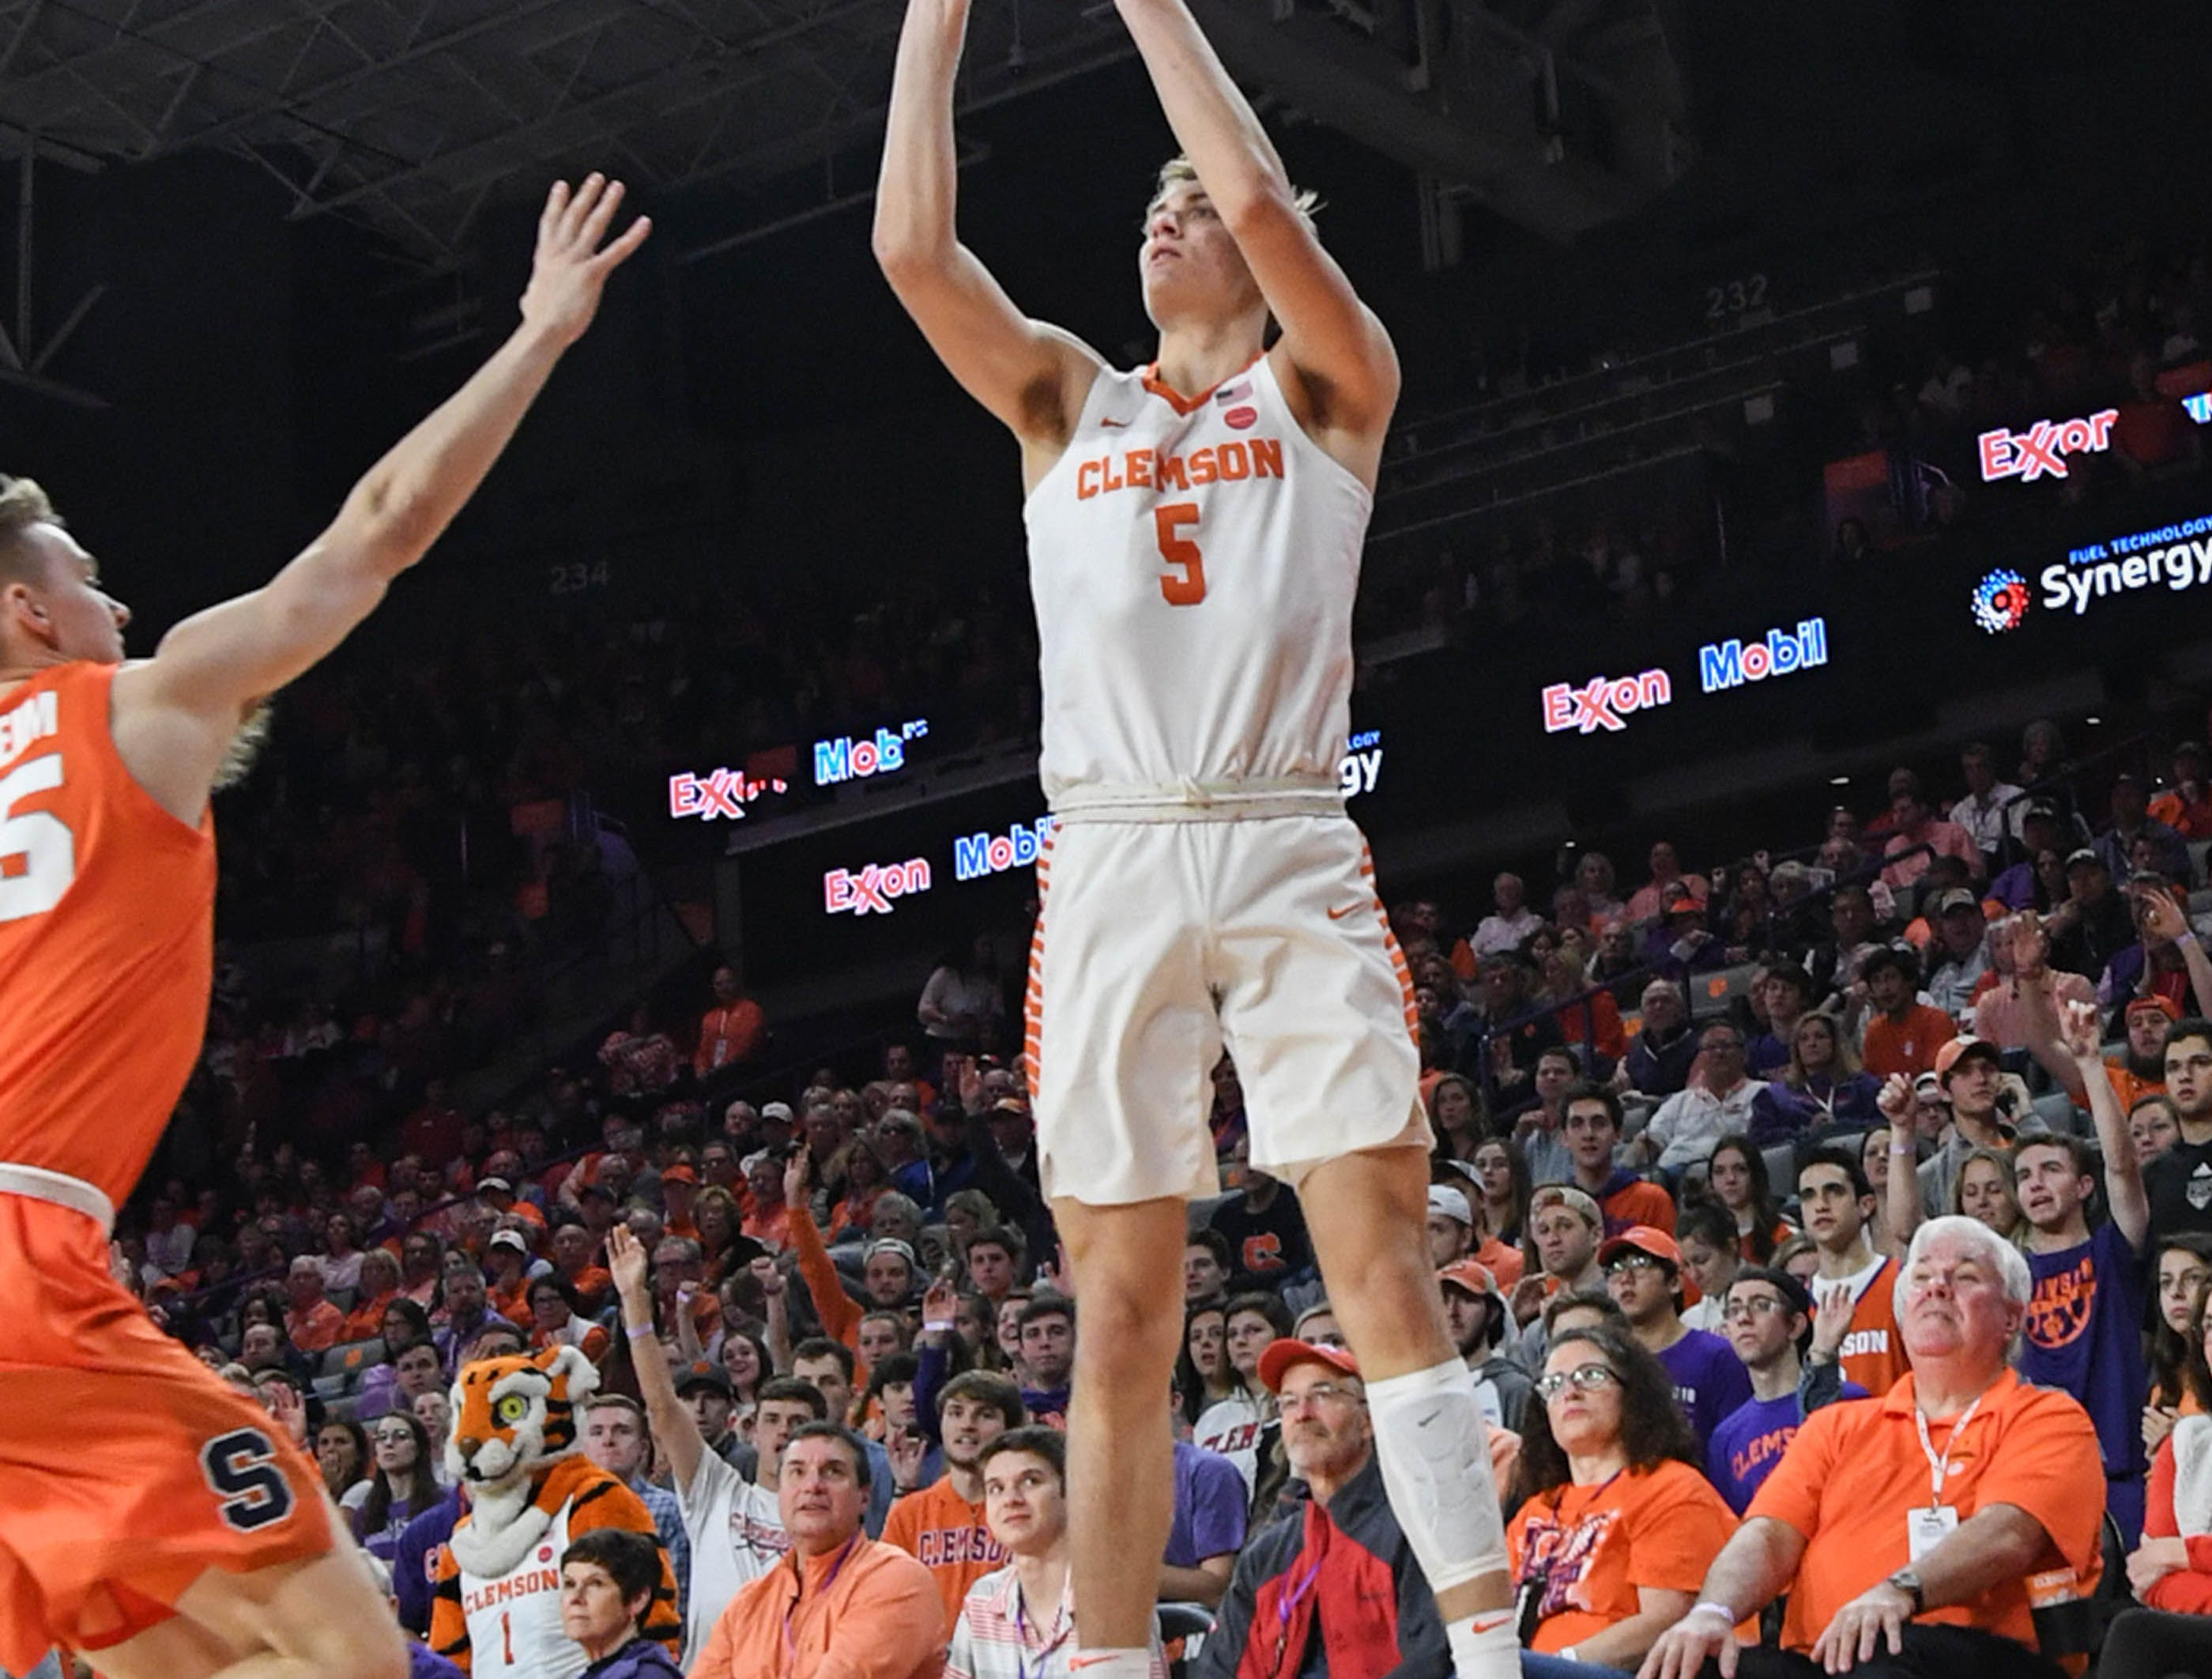 Clemson forward Hunter Tyson(5) shoots against Syracuse during the first half in Littlejohn Coliseum in Clemson Saturday, March 9, 2019.